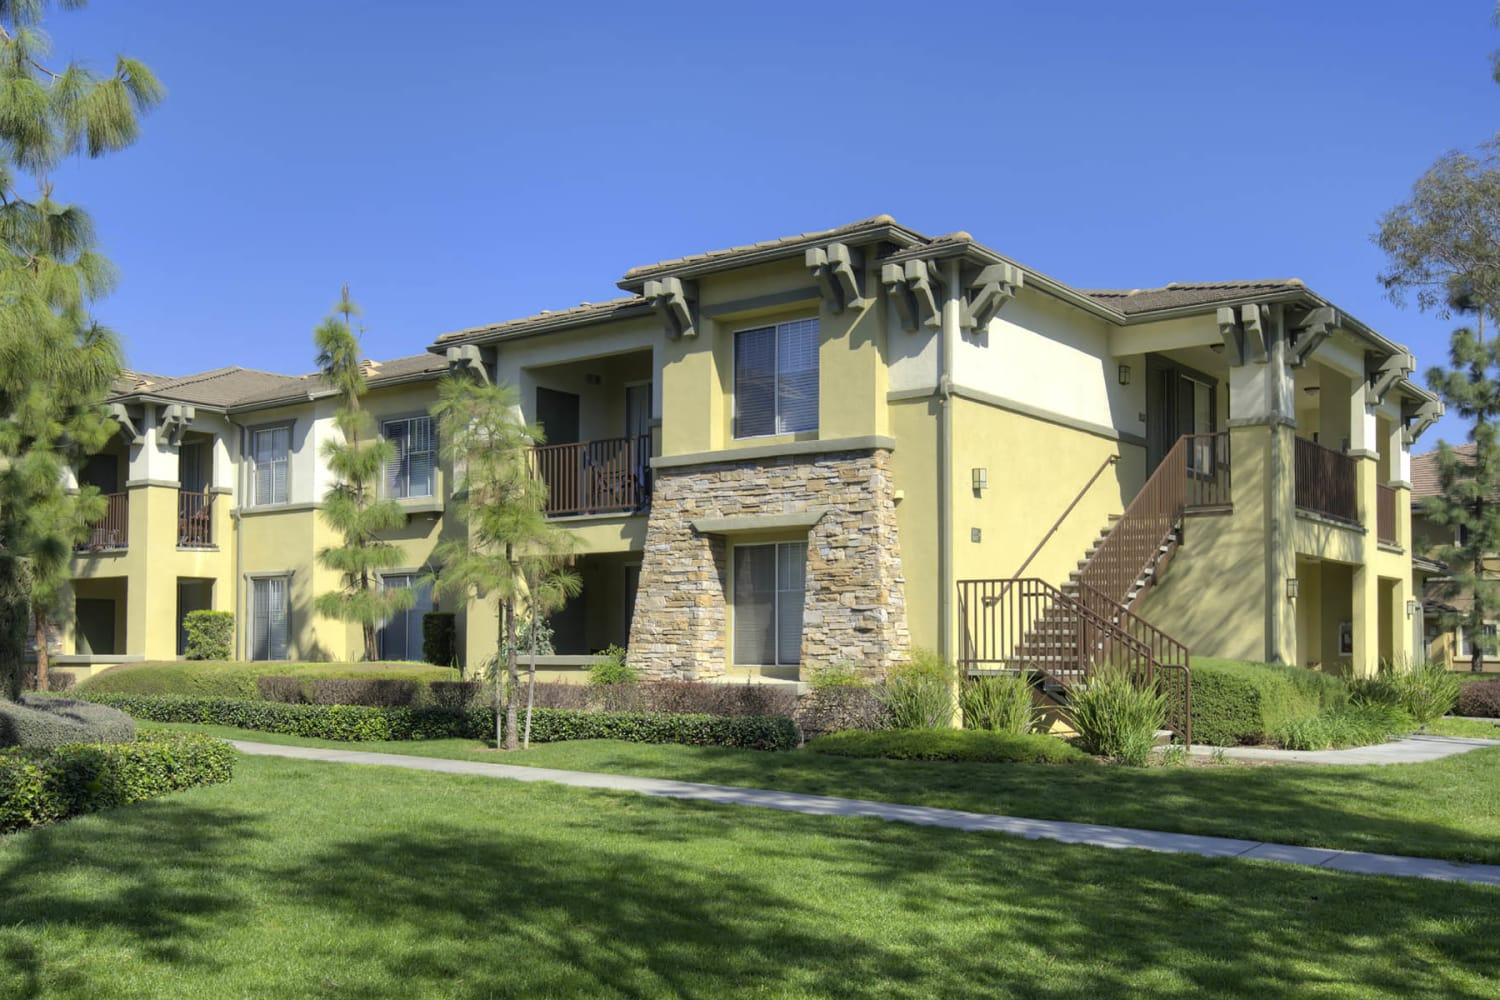 Camino Real offers beautifully manicured grounds in Rancho Cucamonga, California